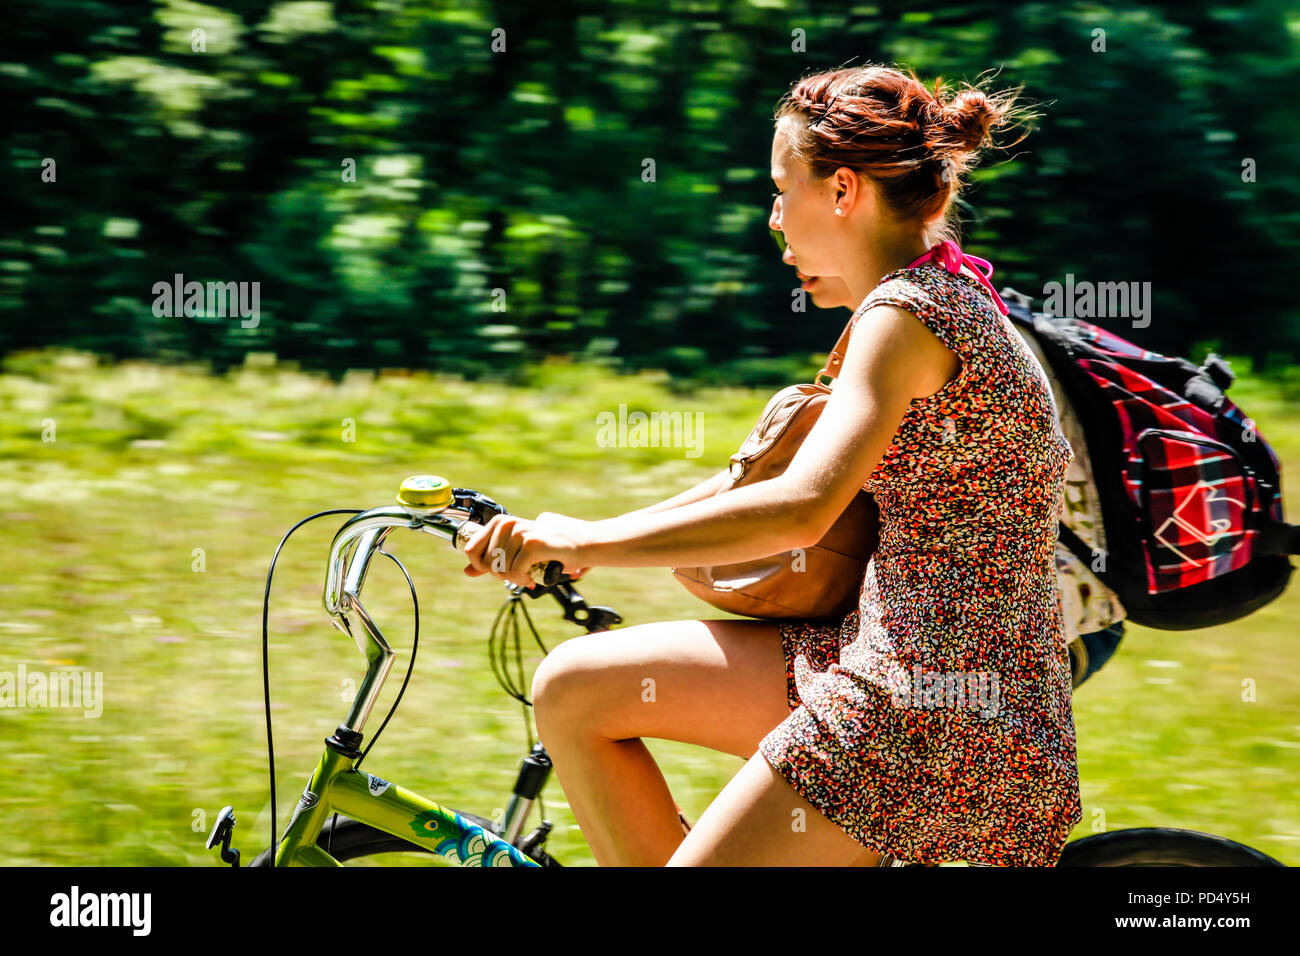 People enjoying a leisurely bicycle ride in rural Austria on a summer's day. - Stock Image